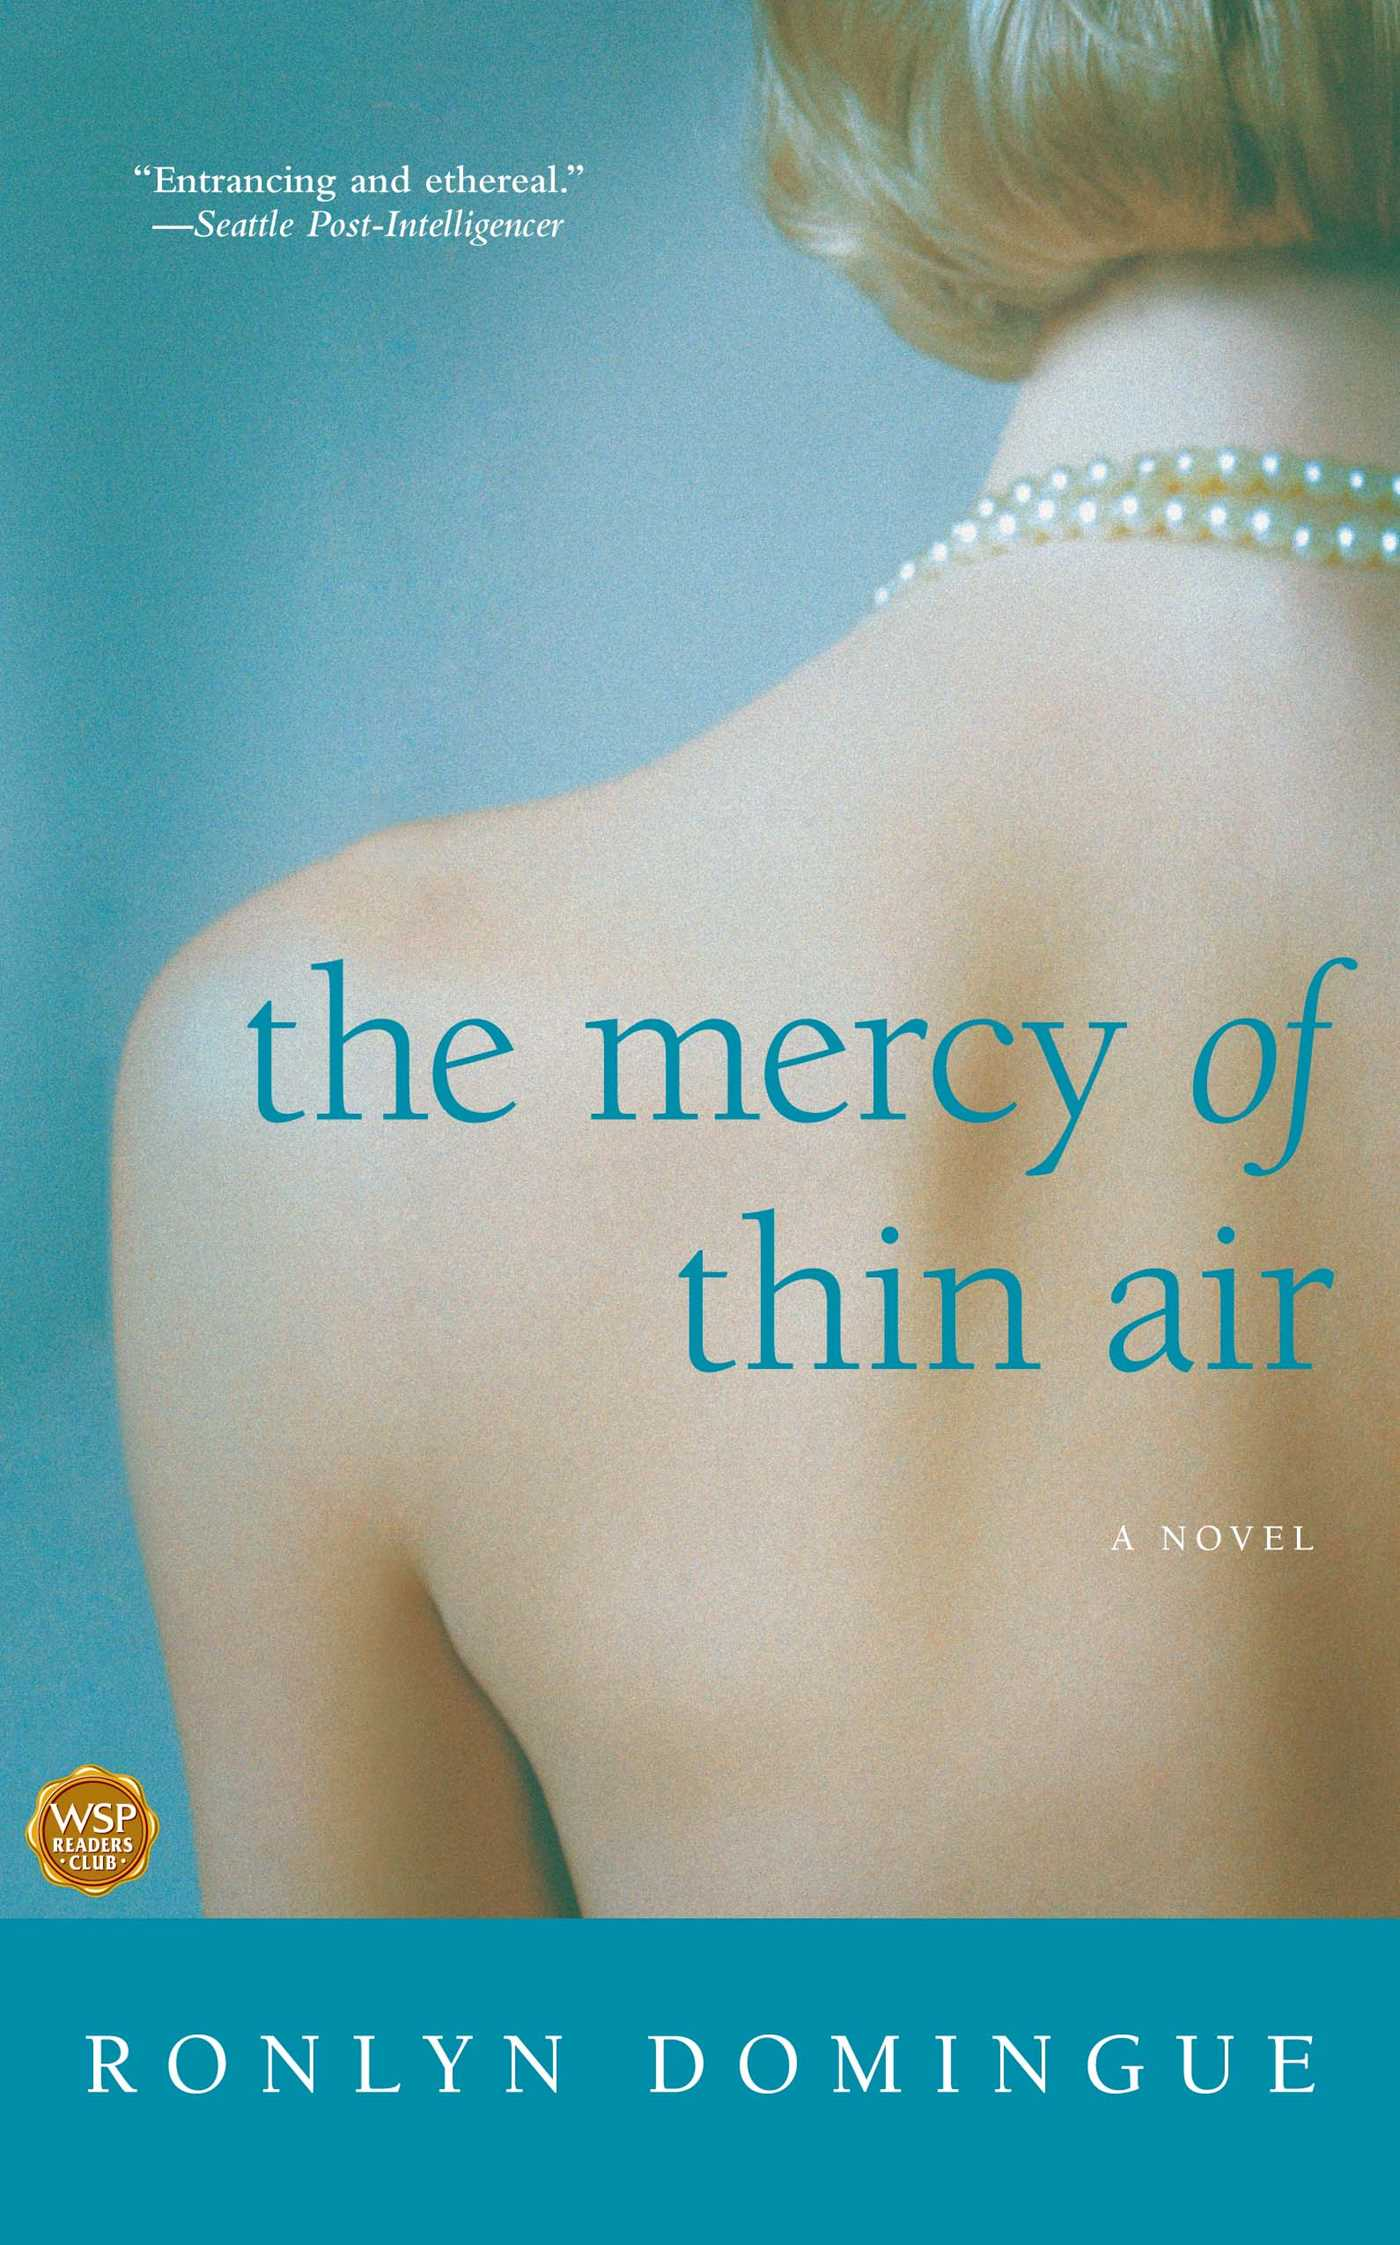 the mercy of thin air book by ronlyn domingue official mercy of thin air 9780743278829 hr